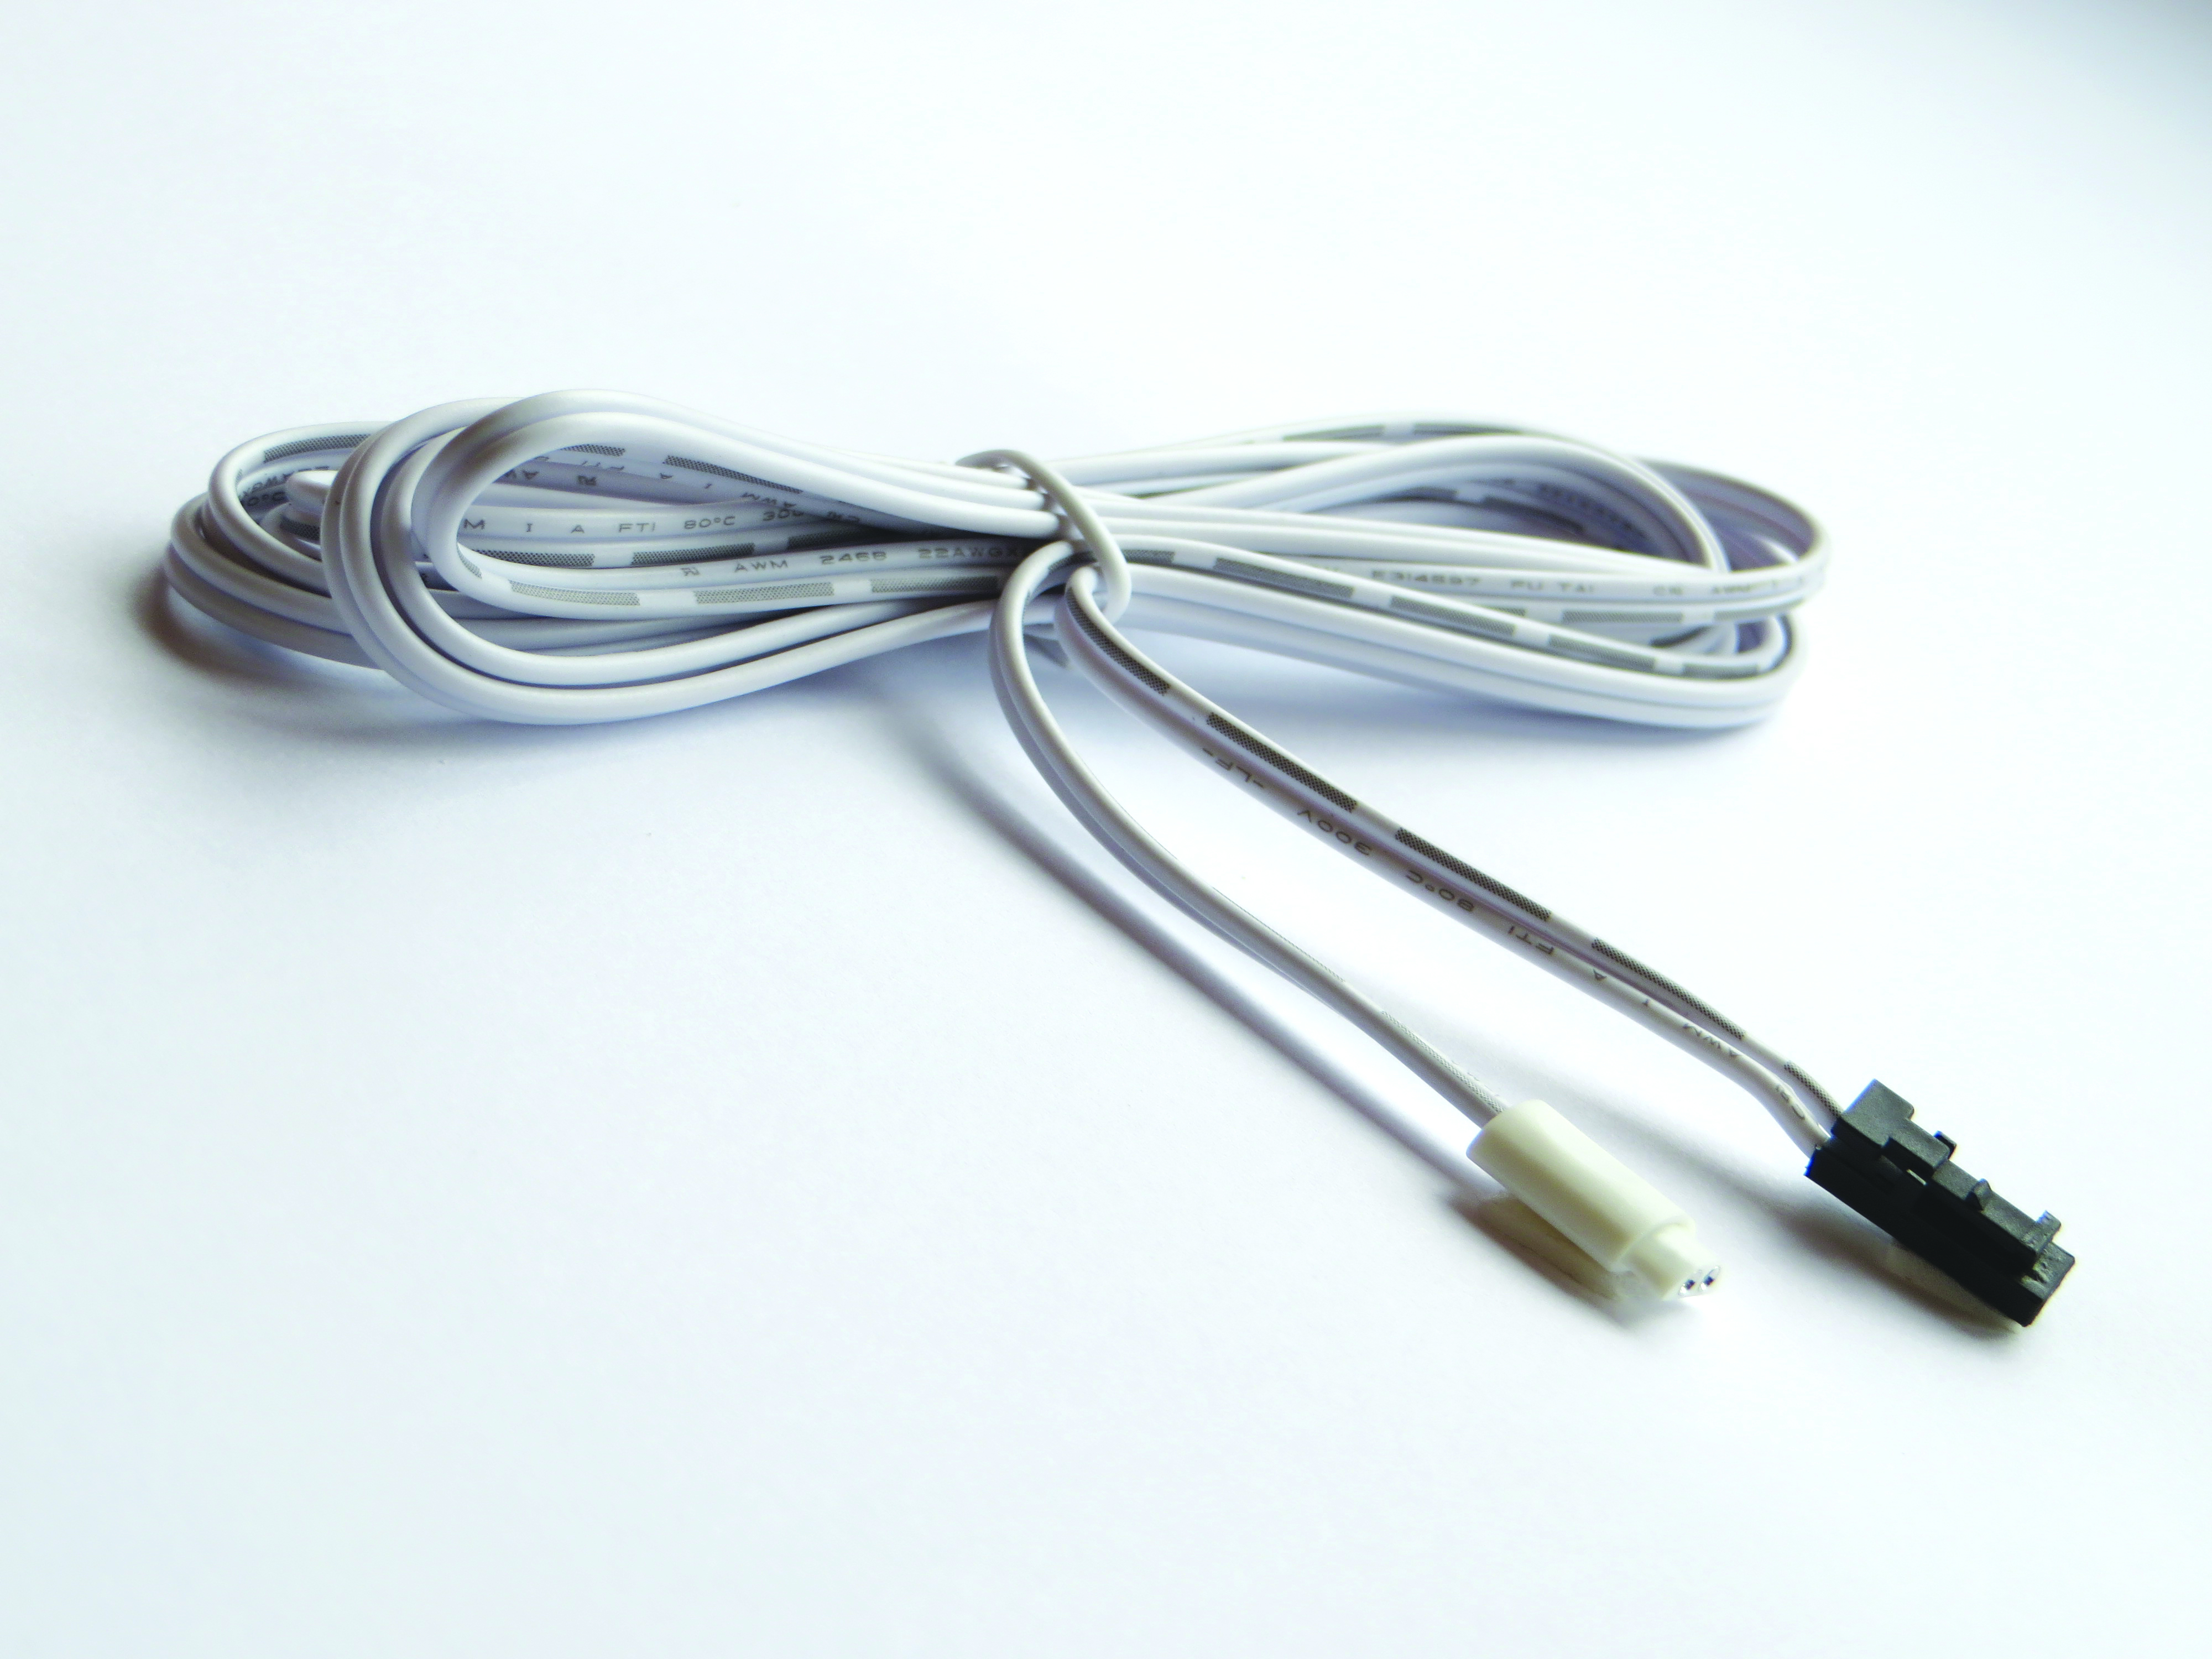 2M LED LINK POWER CABLE WITH MICRO PLUG